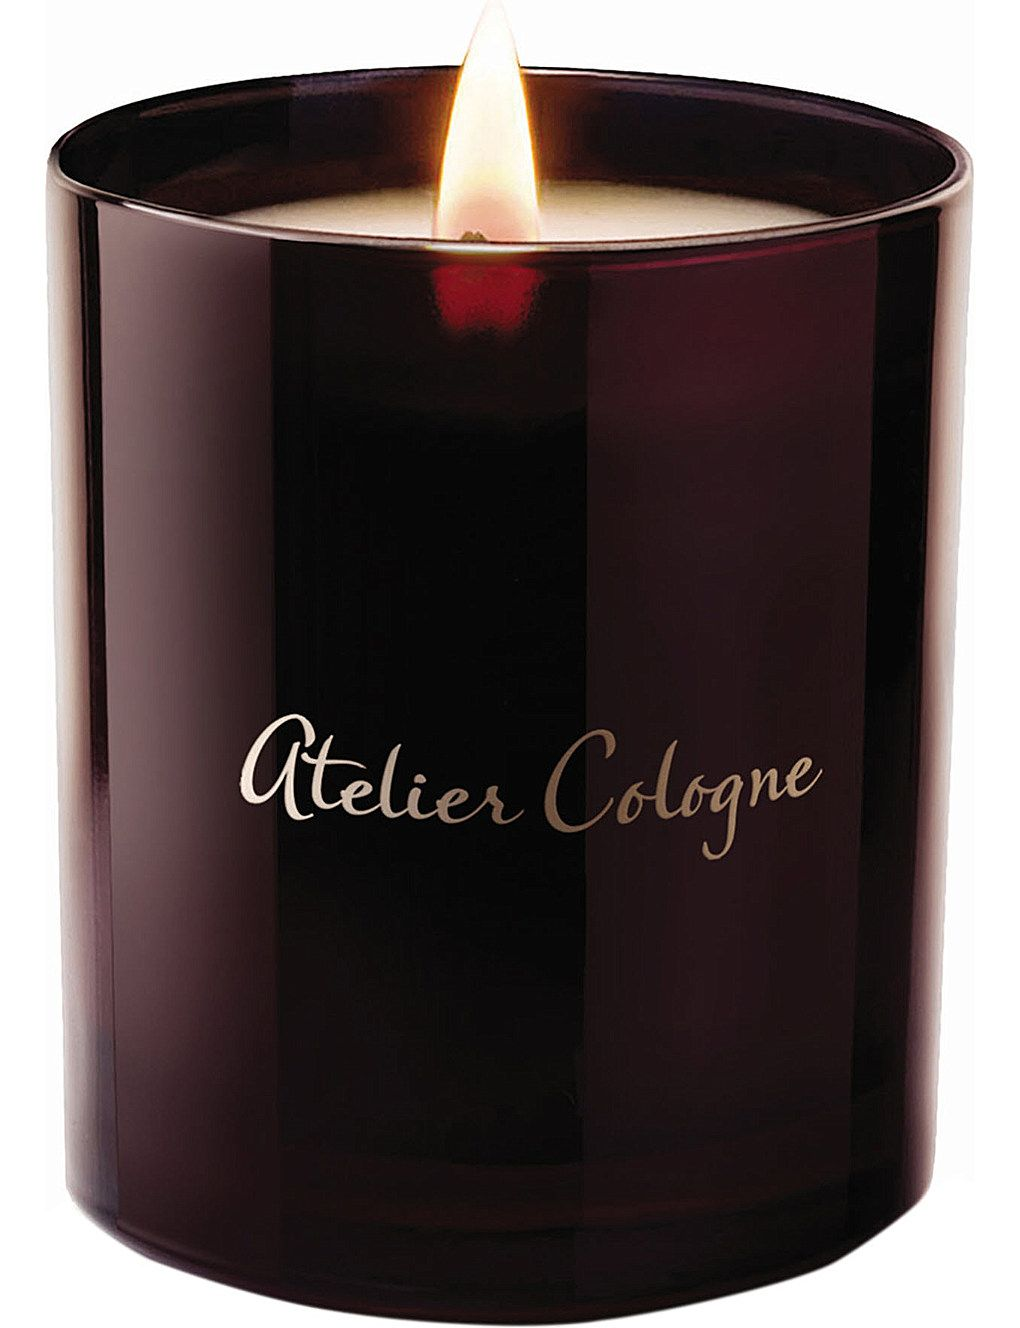 Image of Atelier Cologne Vanille Insensee Candle